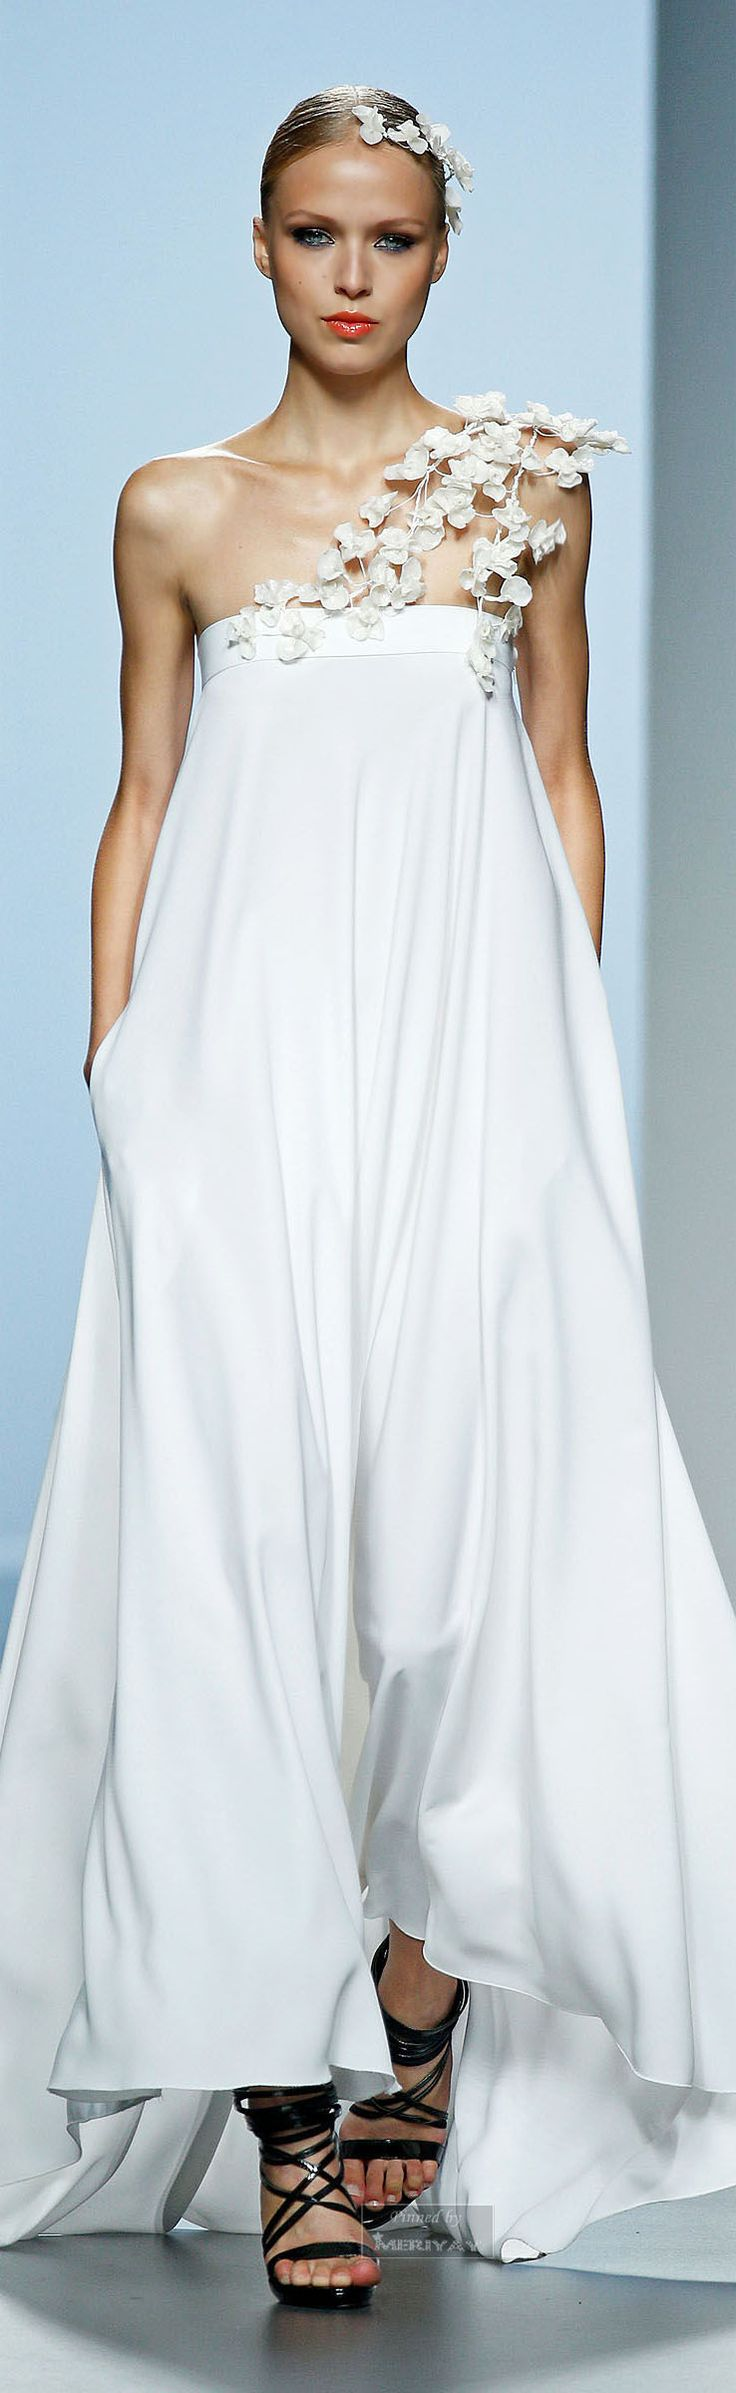 Juana Martin Spring-summer 2015. simplicity and elegant with feminine details #resortwear #fluidity